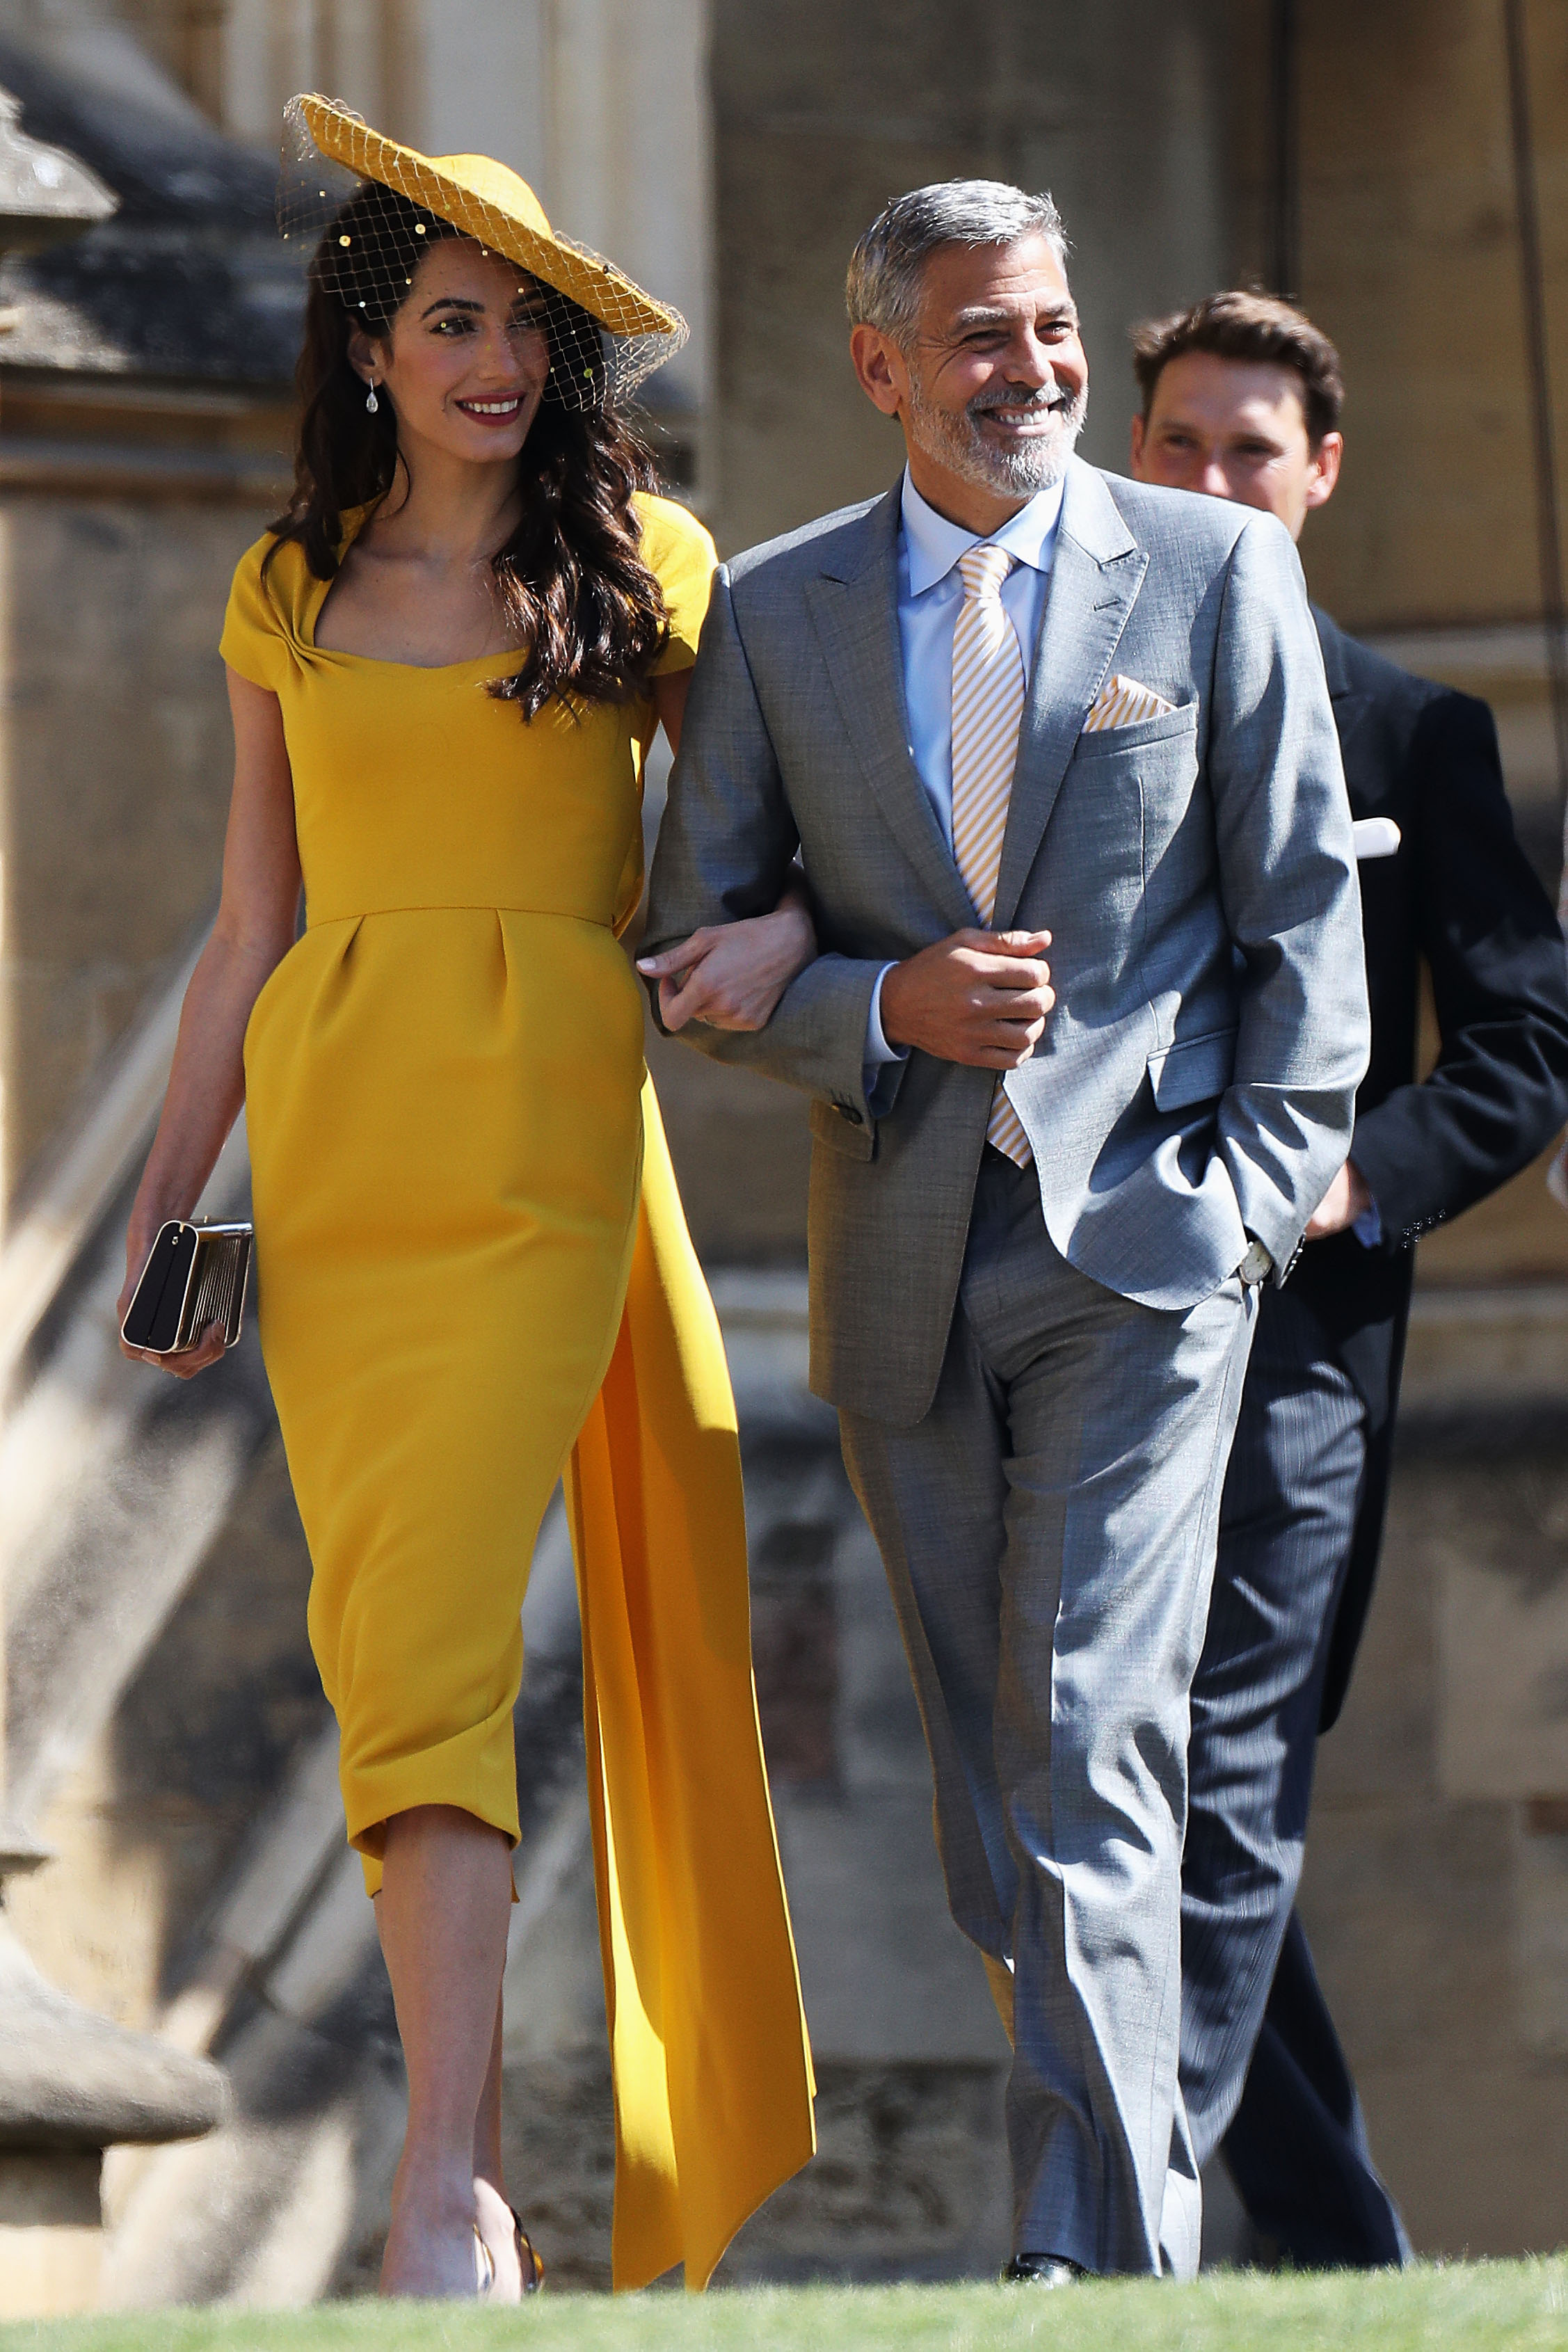 ac89e3fd089c5 Royal Wedding Guests  See All the Stars at Harry and Meghan s Nuptials!